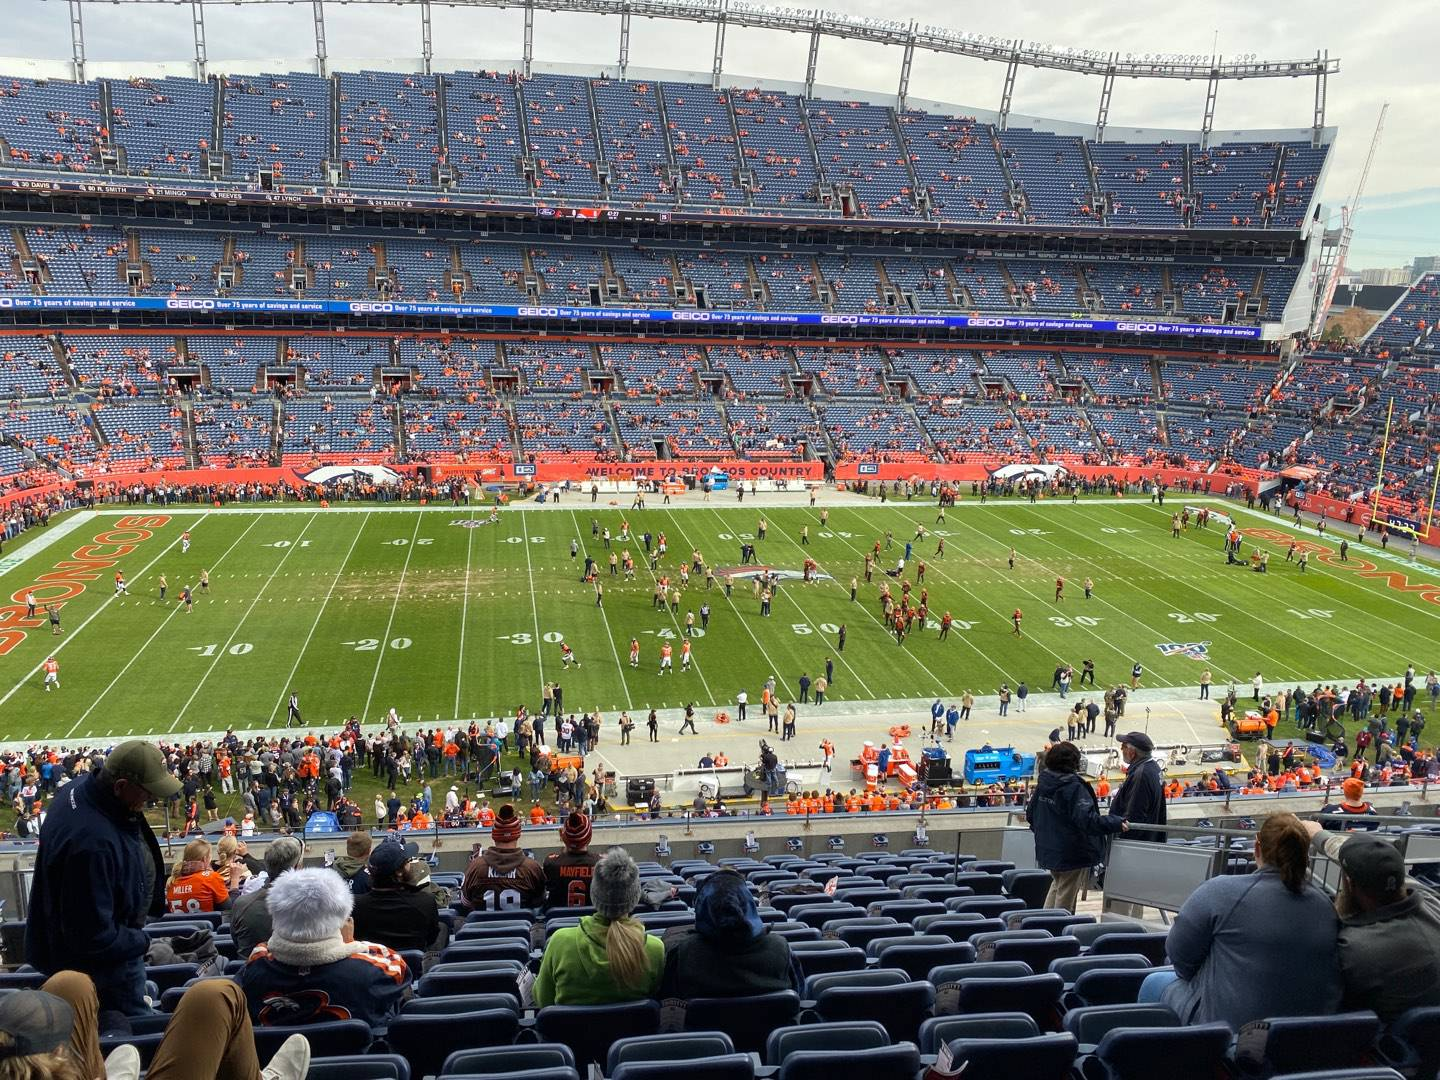 Empower Field at Mile High Stadium Section 311 Row 14 Seat 9